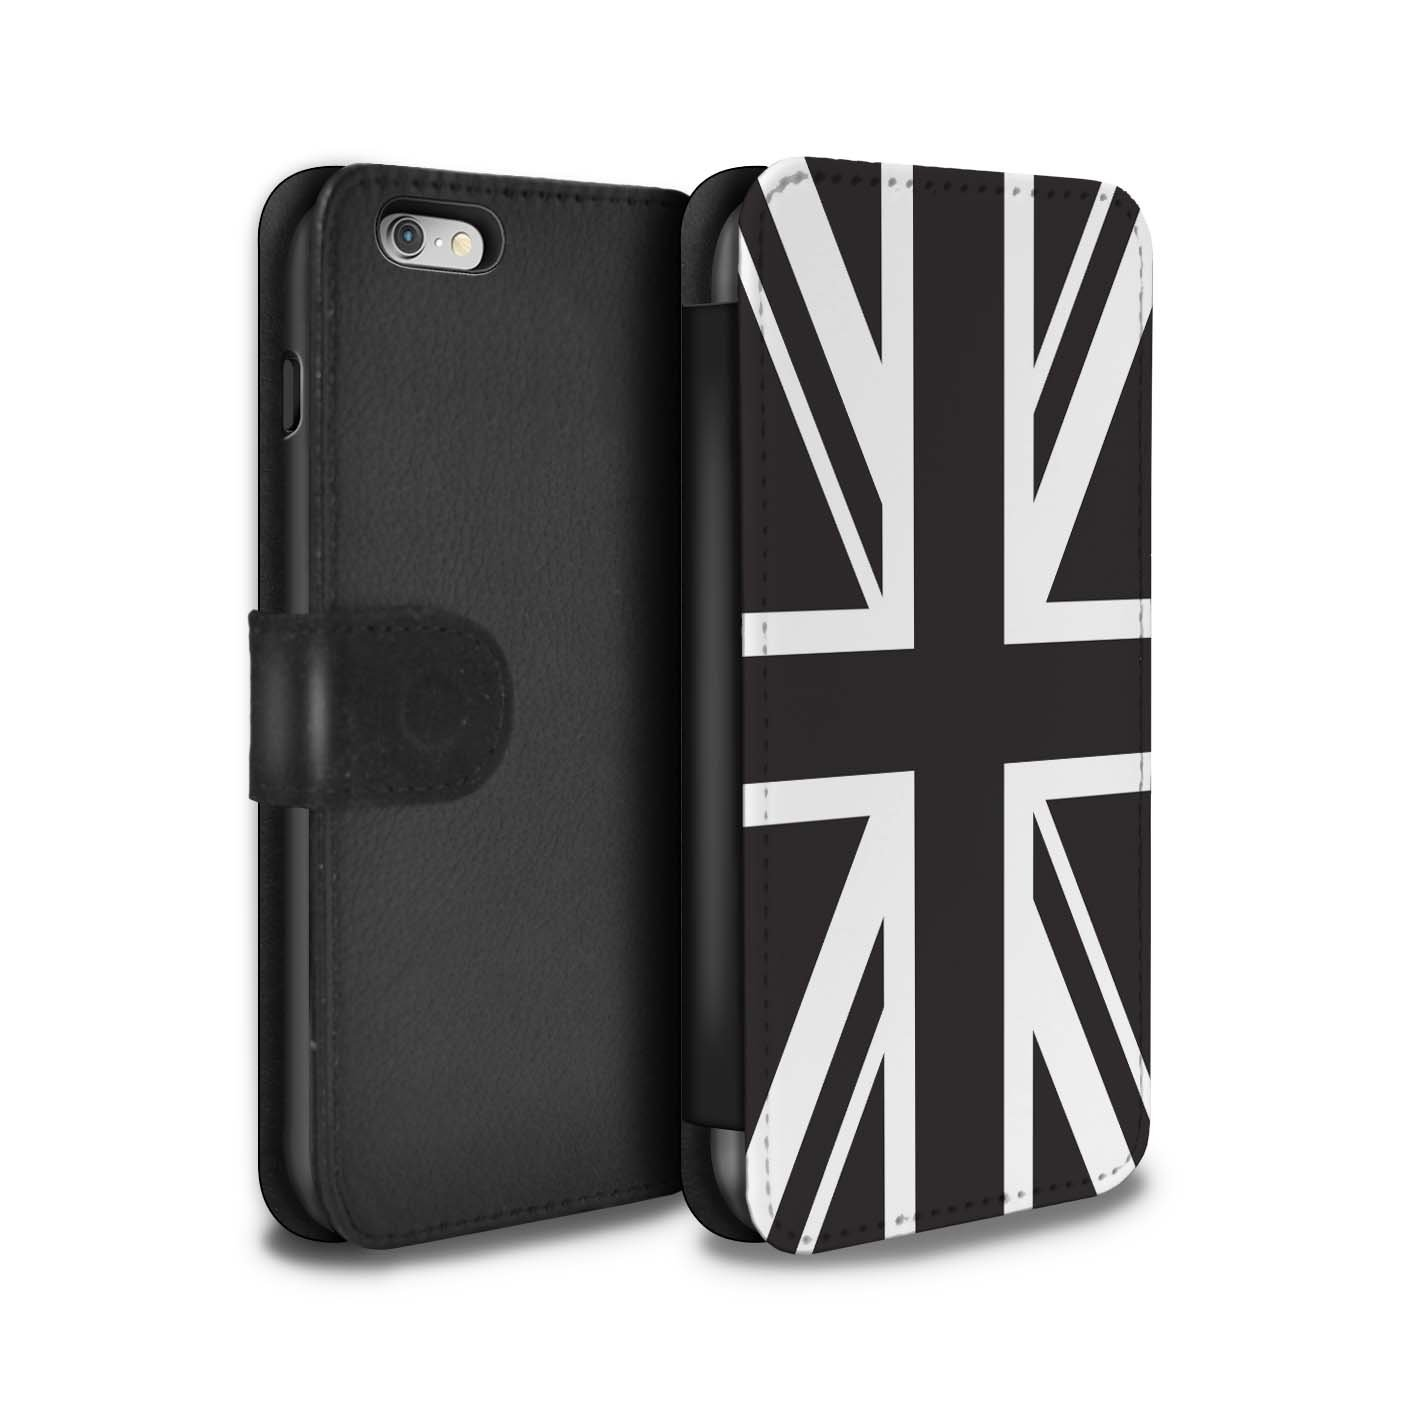 d613e83a200b STUFF4 PU Leather Wallet Flip Case Cover for Apple iPhone 6+ Plus 5.5    Union Jack Flag Design Great Britain British Pride Collection  Amazon.ca   Cell ...